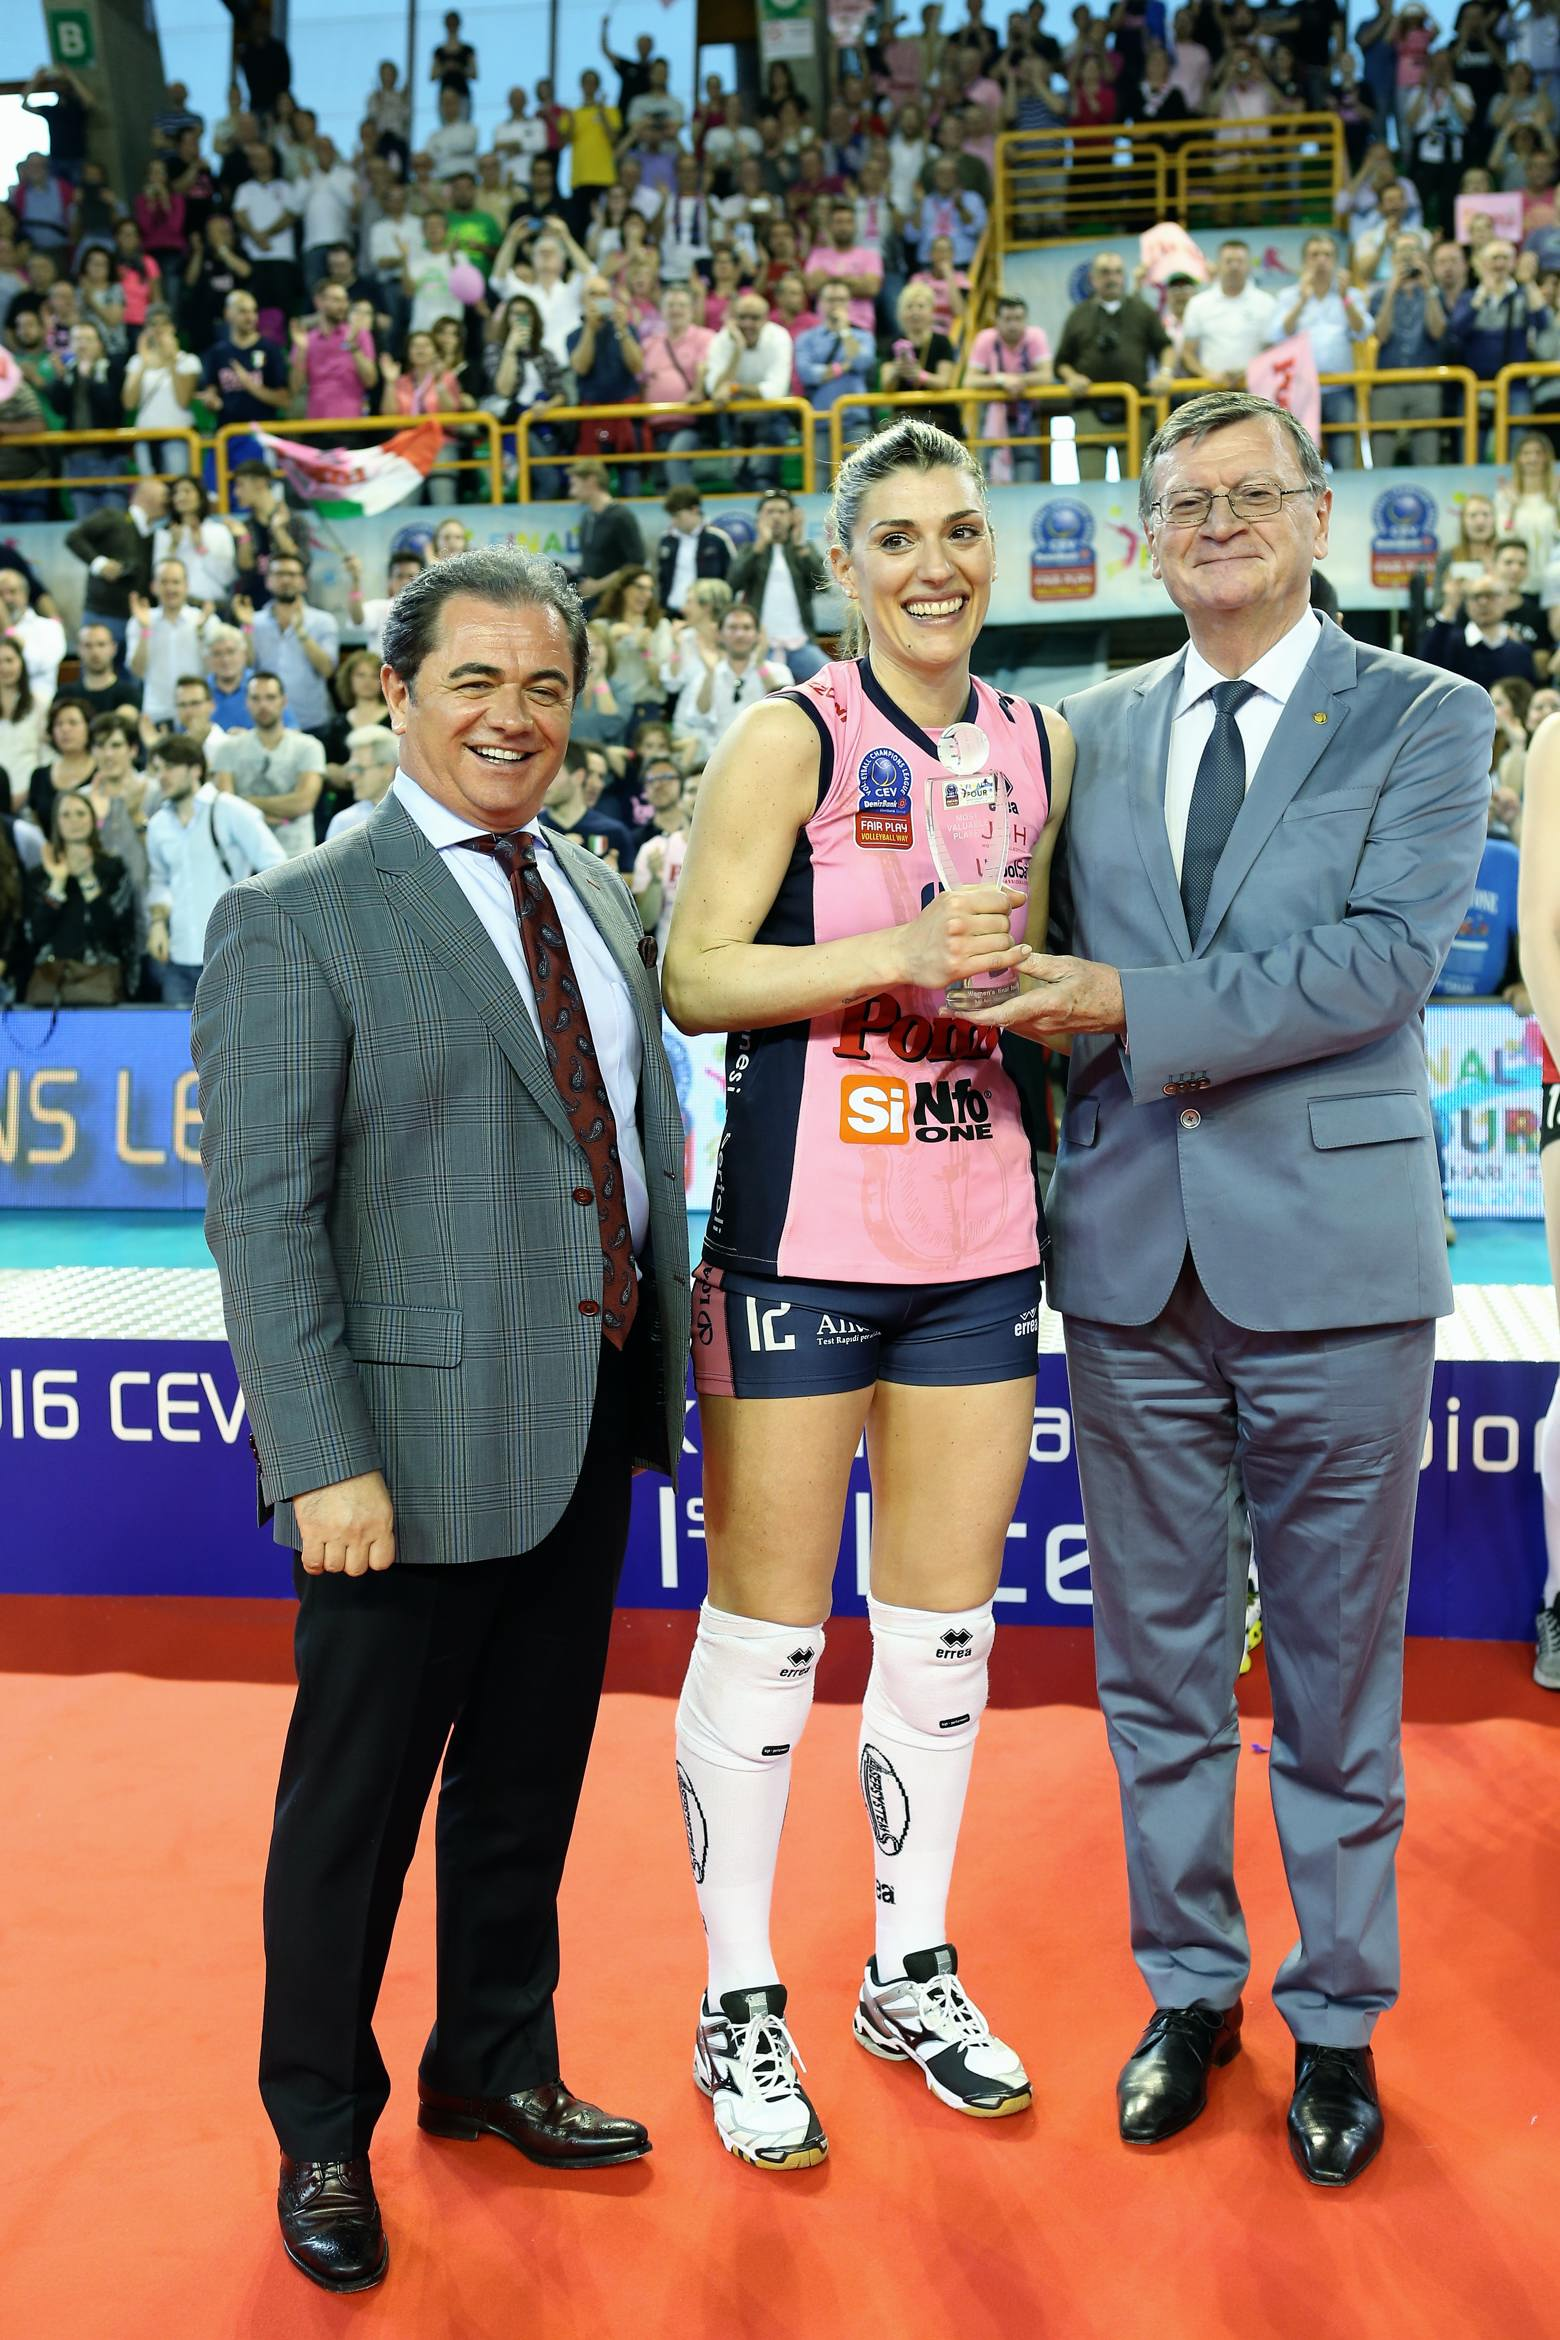 francesca piccinini best volleyball player